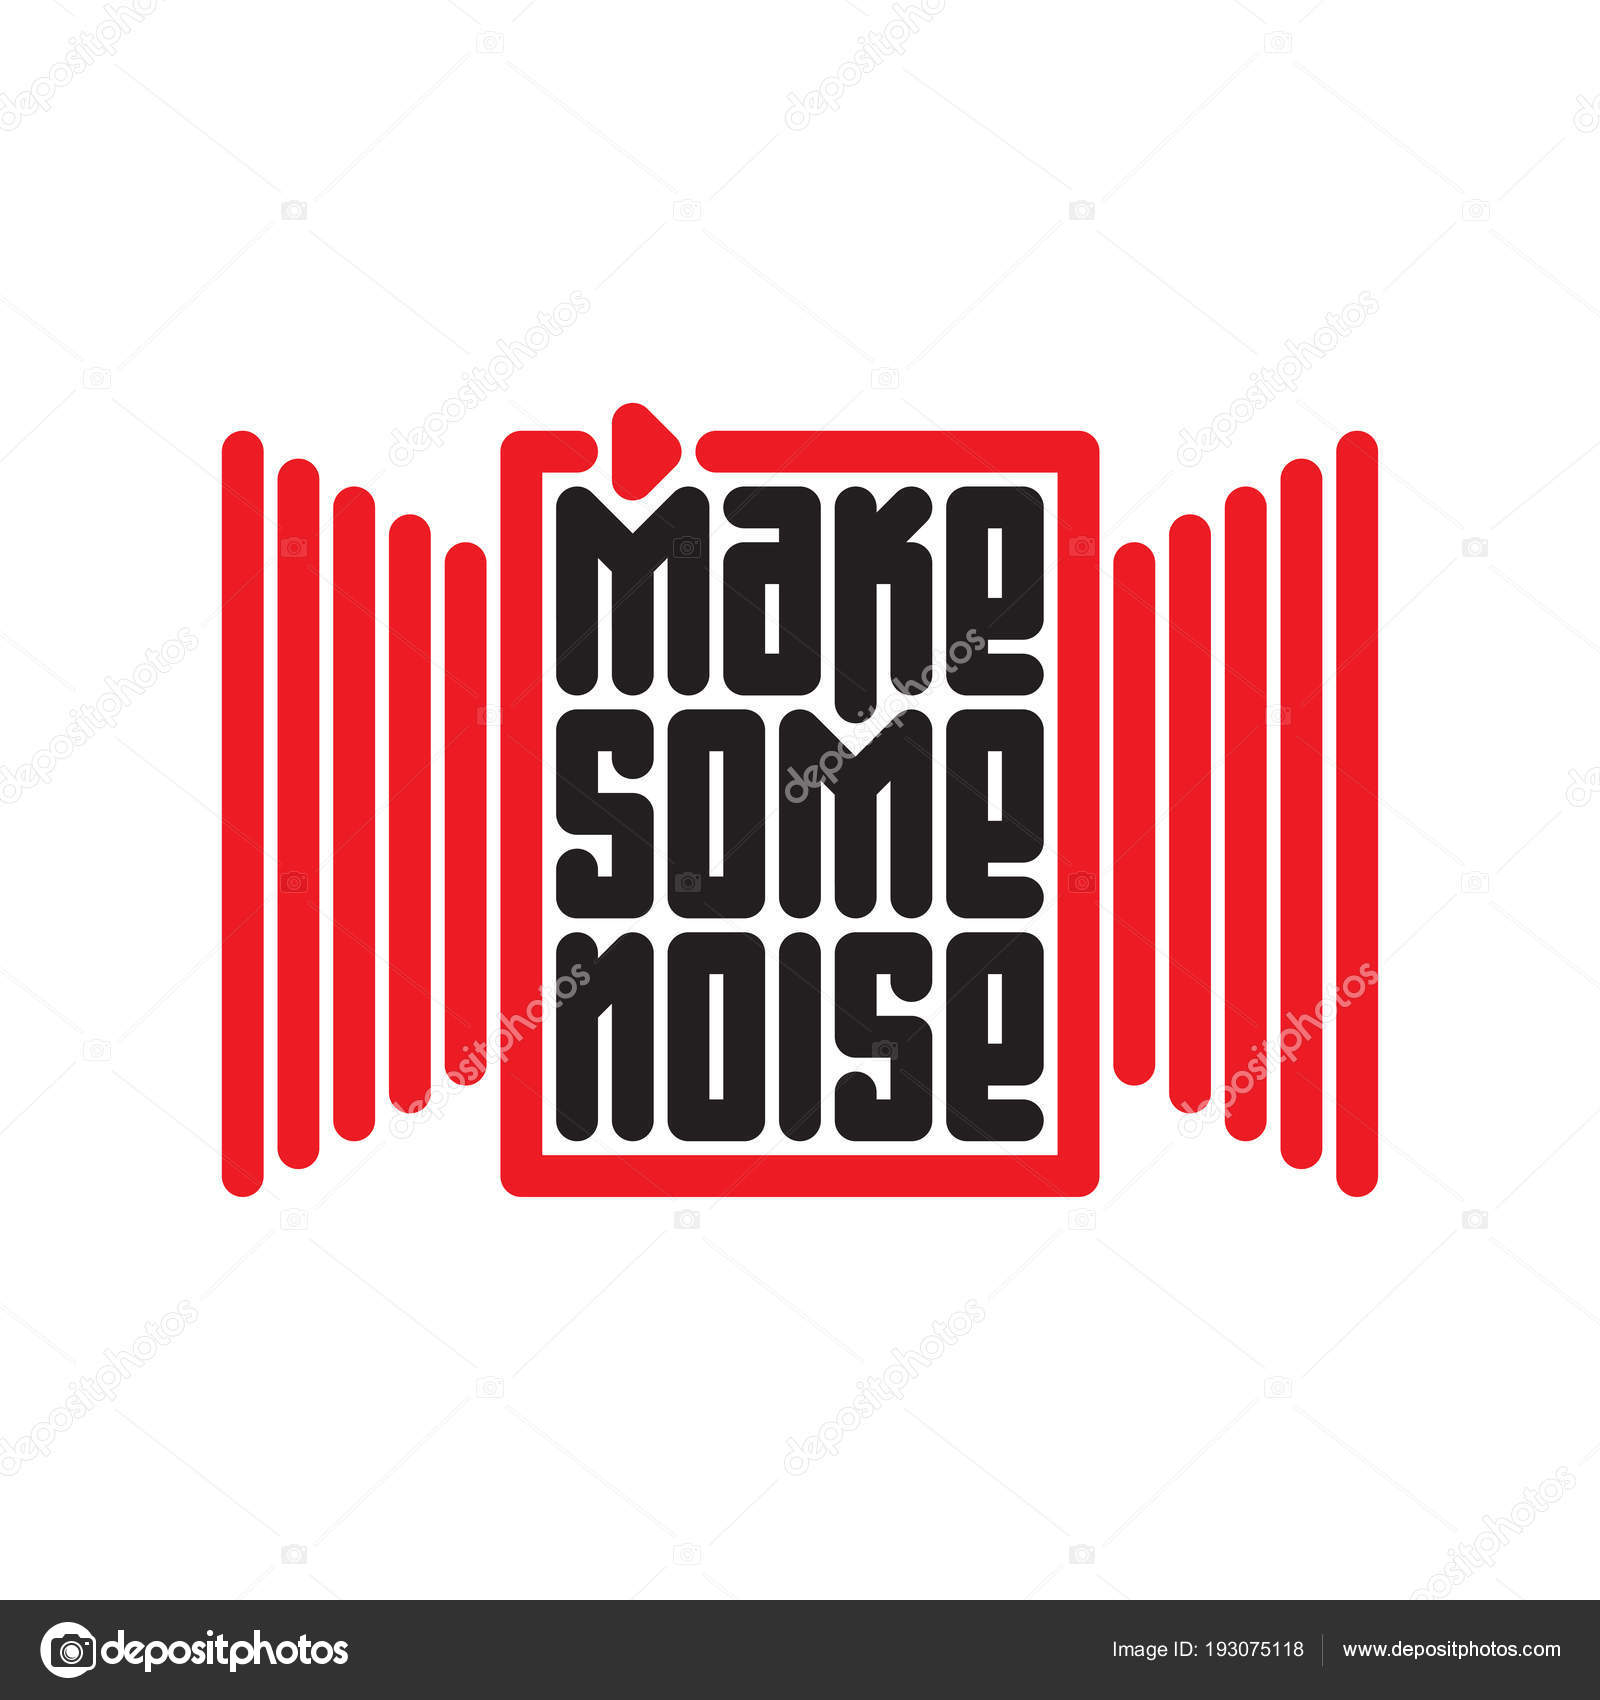 e6f814e0 Make some noise - music poster or t-shirt design with red button